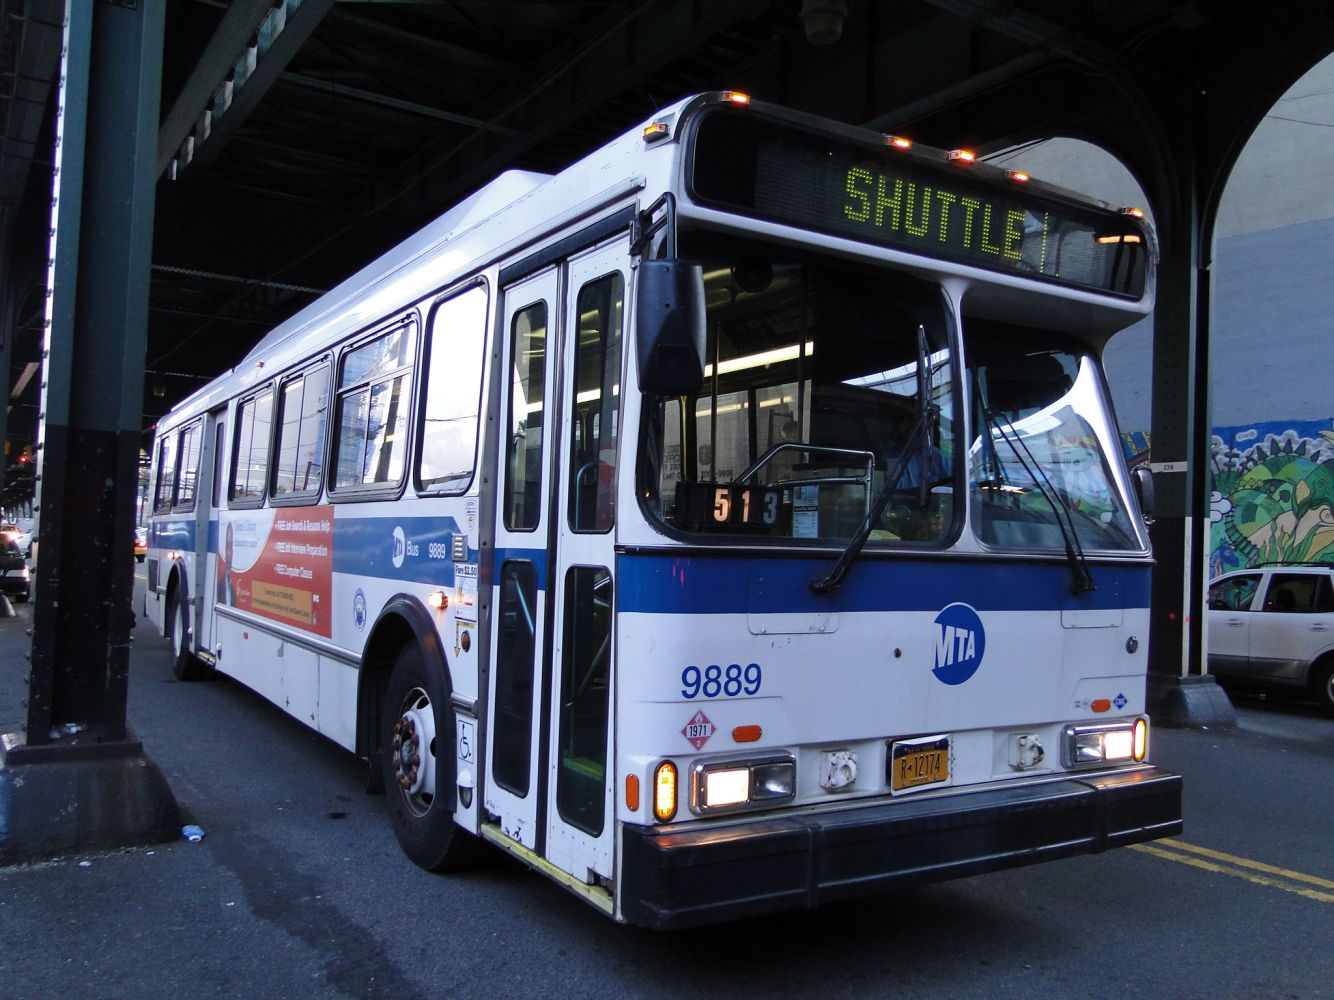 1999 Orion V CNG #9889 (N) Subway Shuttle at 31st Street and Ditmars Blvd